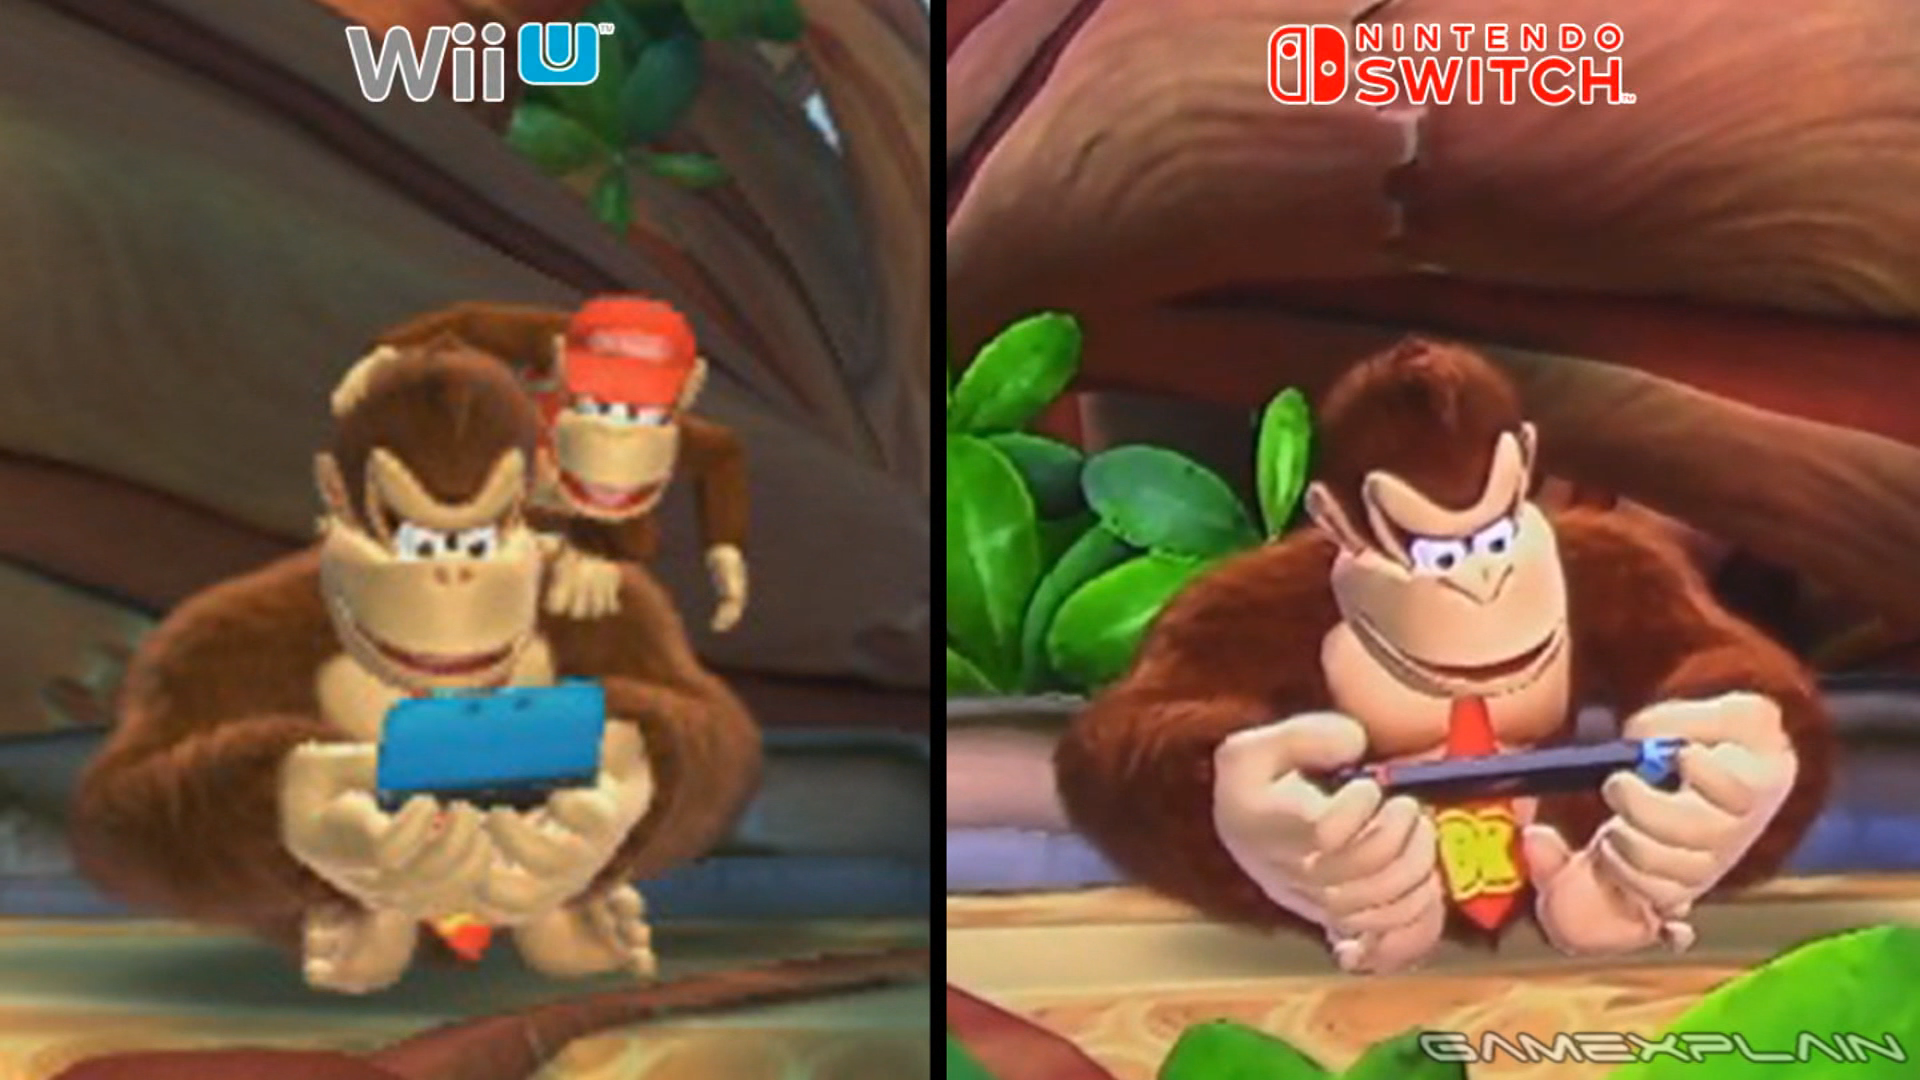 Donkey Kong S Character Model Was Updated For The Switch Version